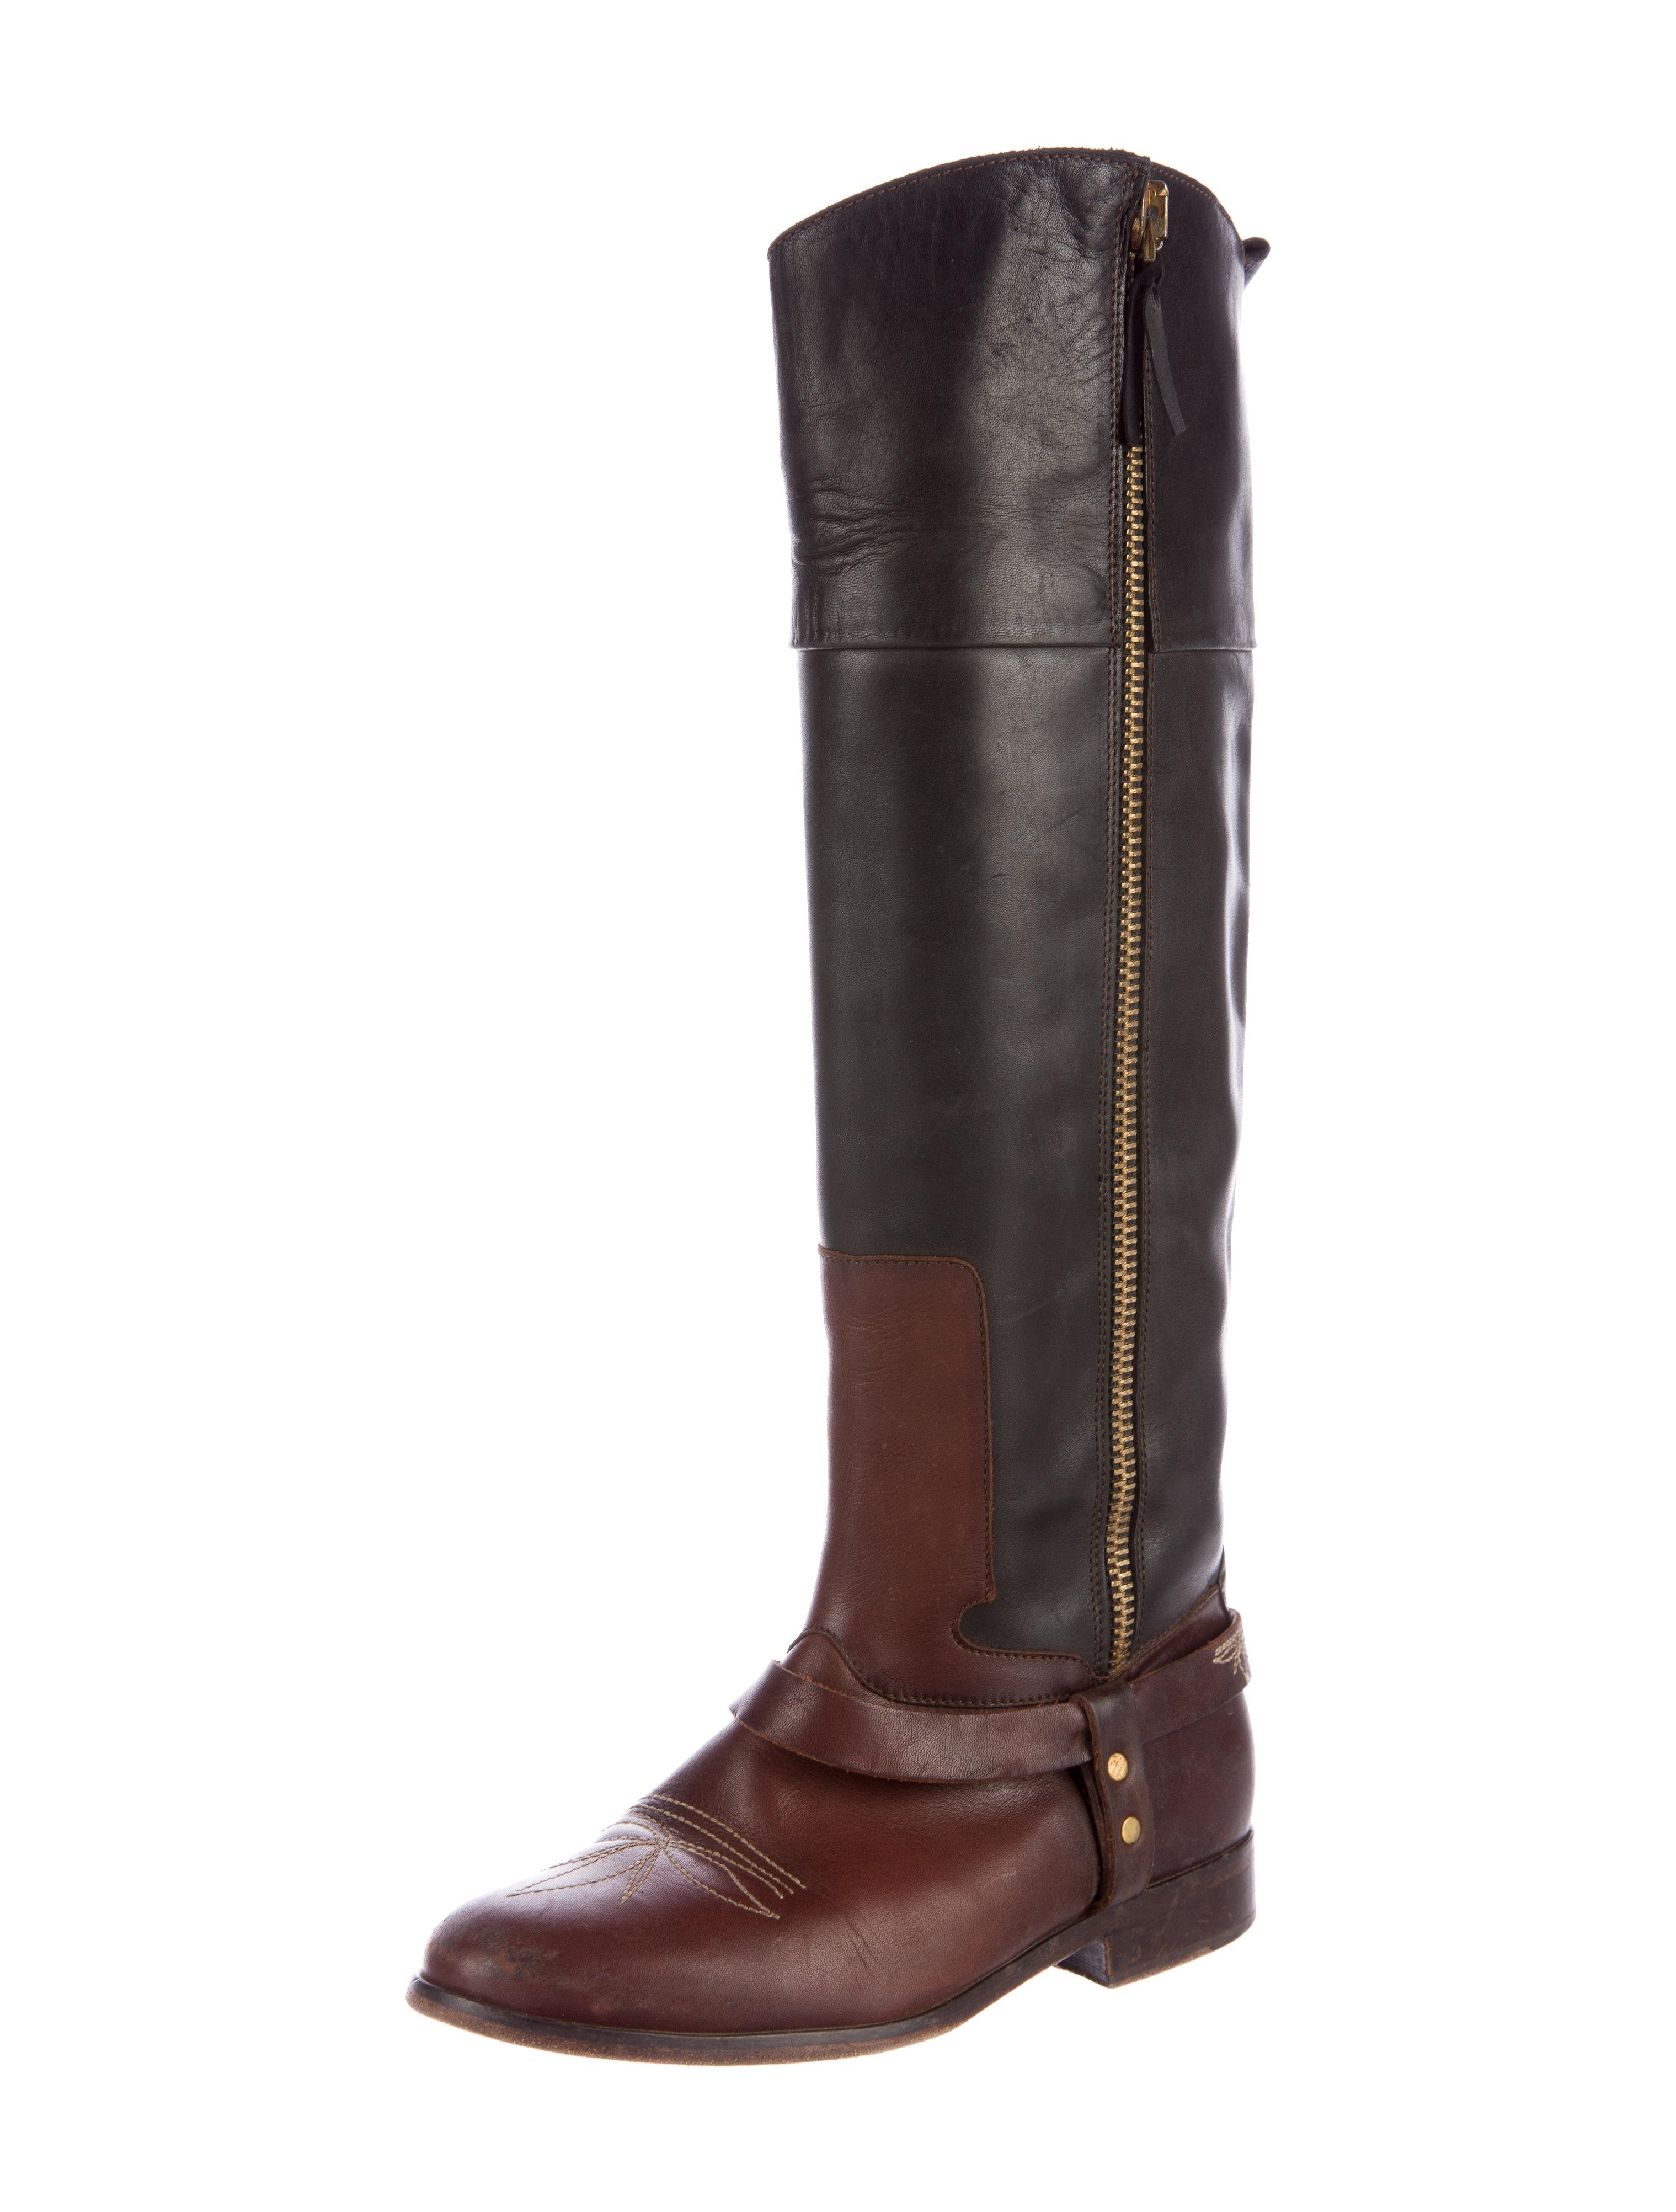 golden goose two tone leather boots shoes wg523762